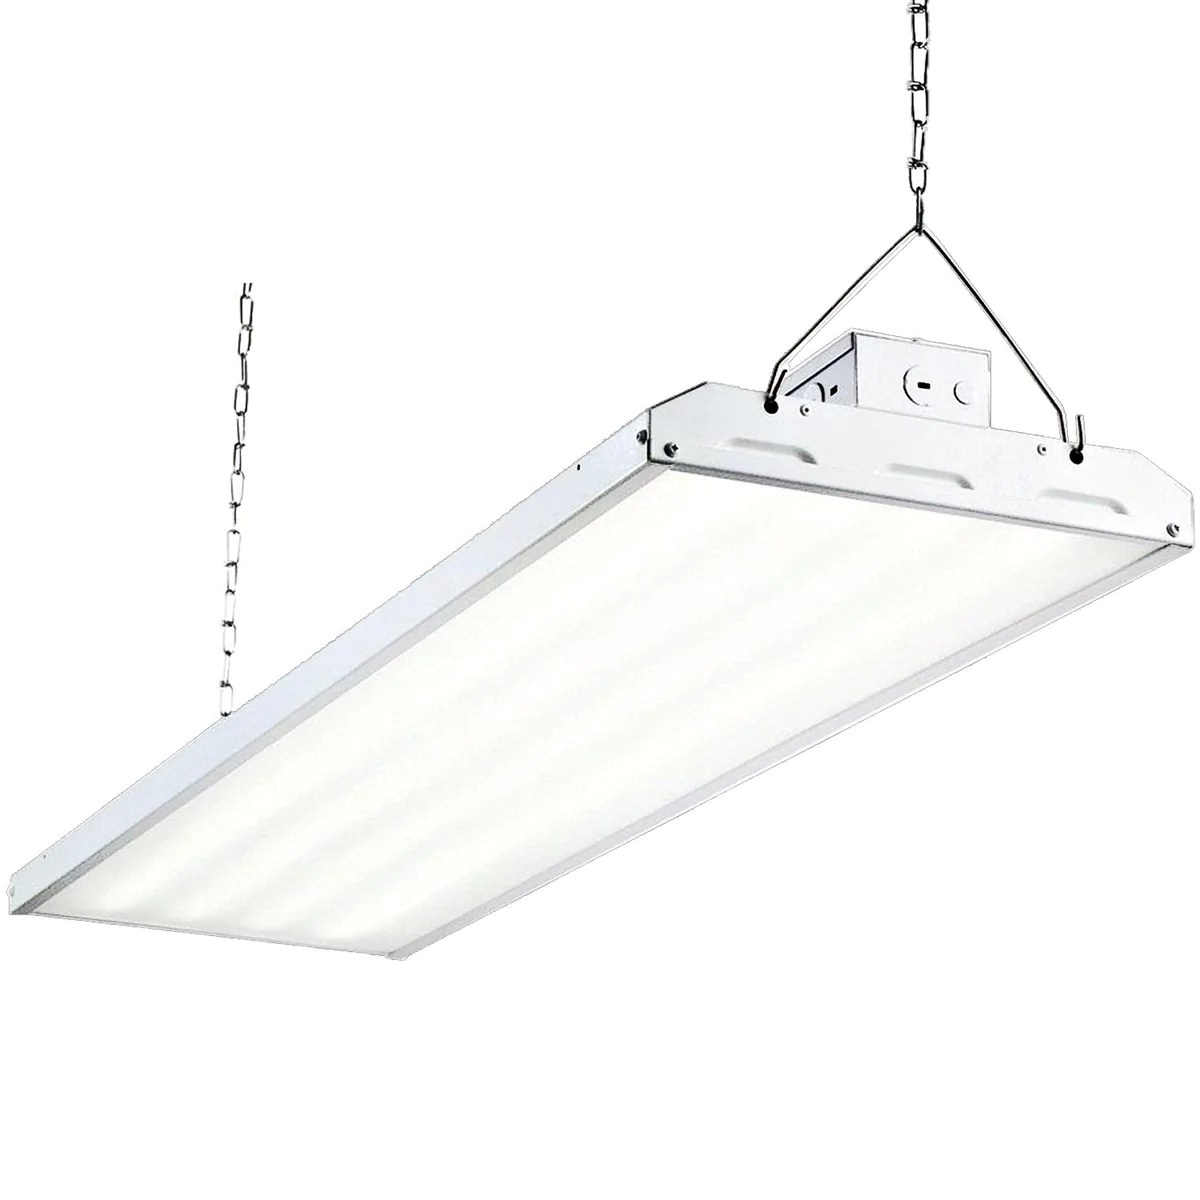 small resolution of 4ft 4 bulb t5 fixture with sensor wiring diagram